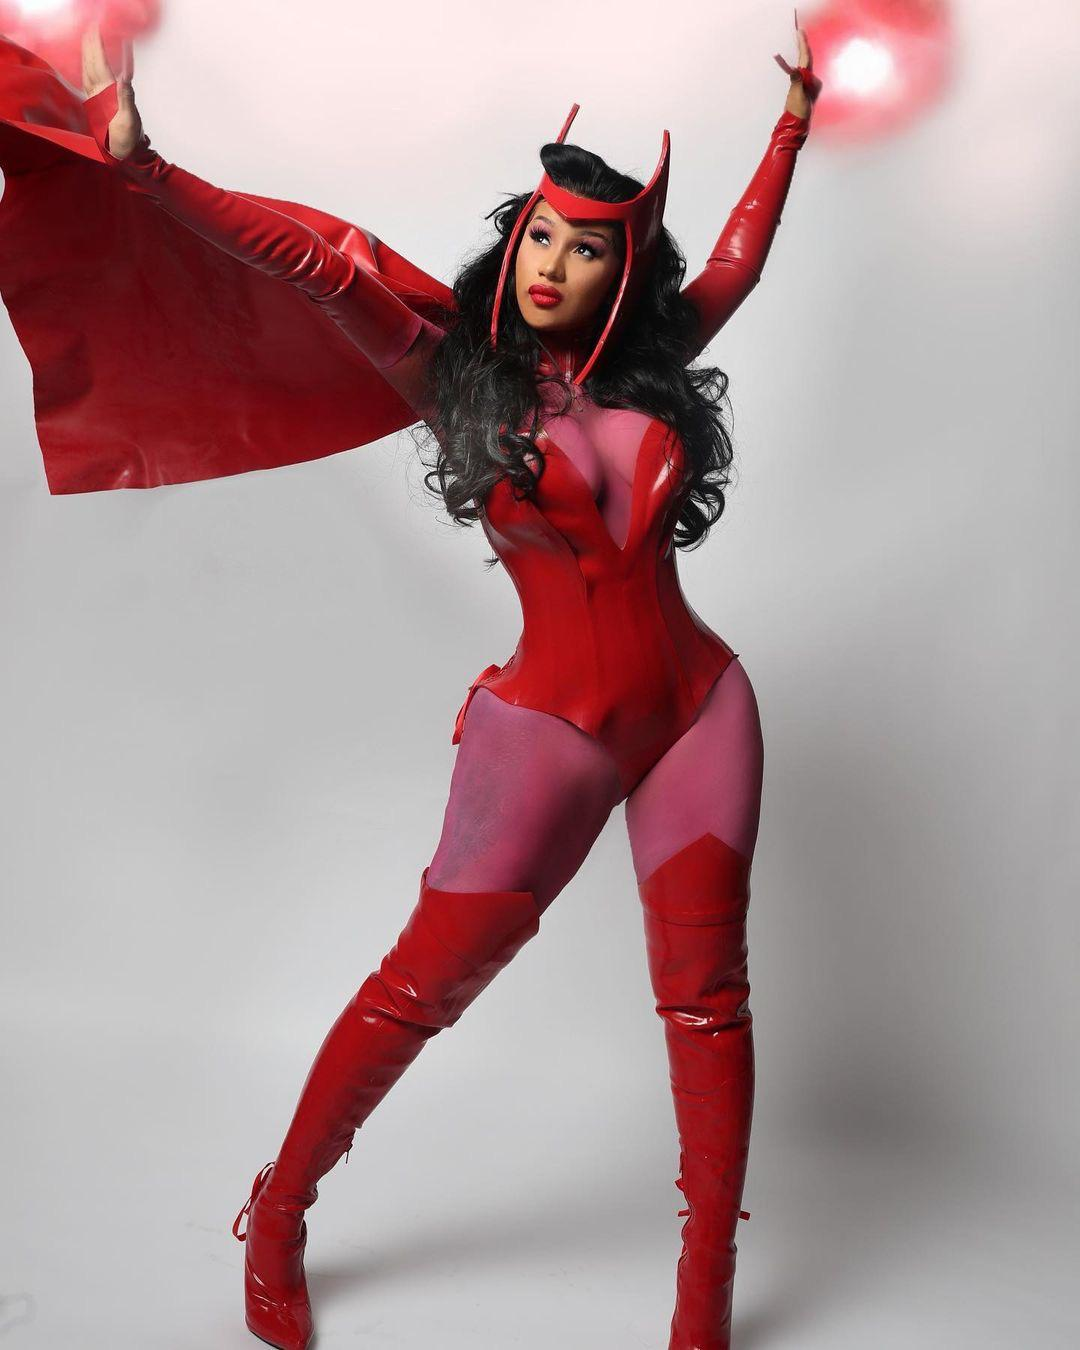 Cardi B dressed as Scarlet Witch for Halloween 2020